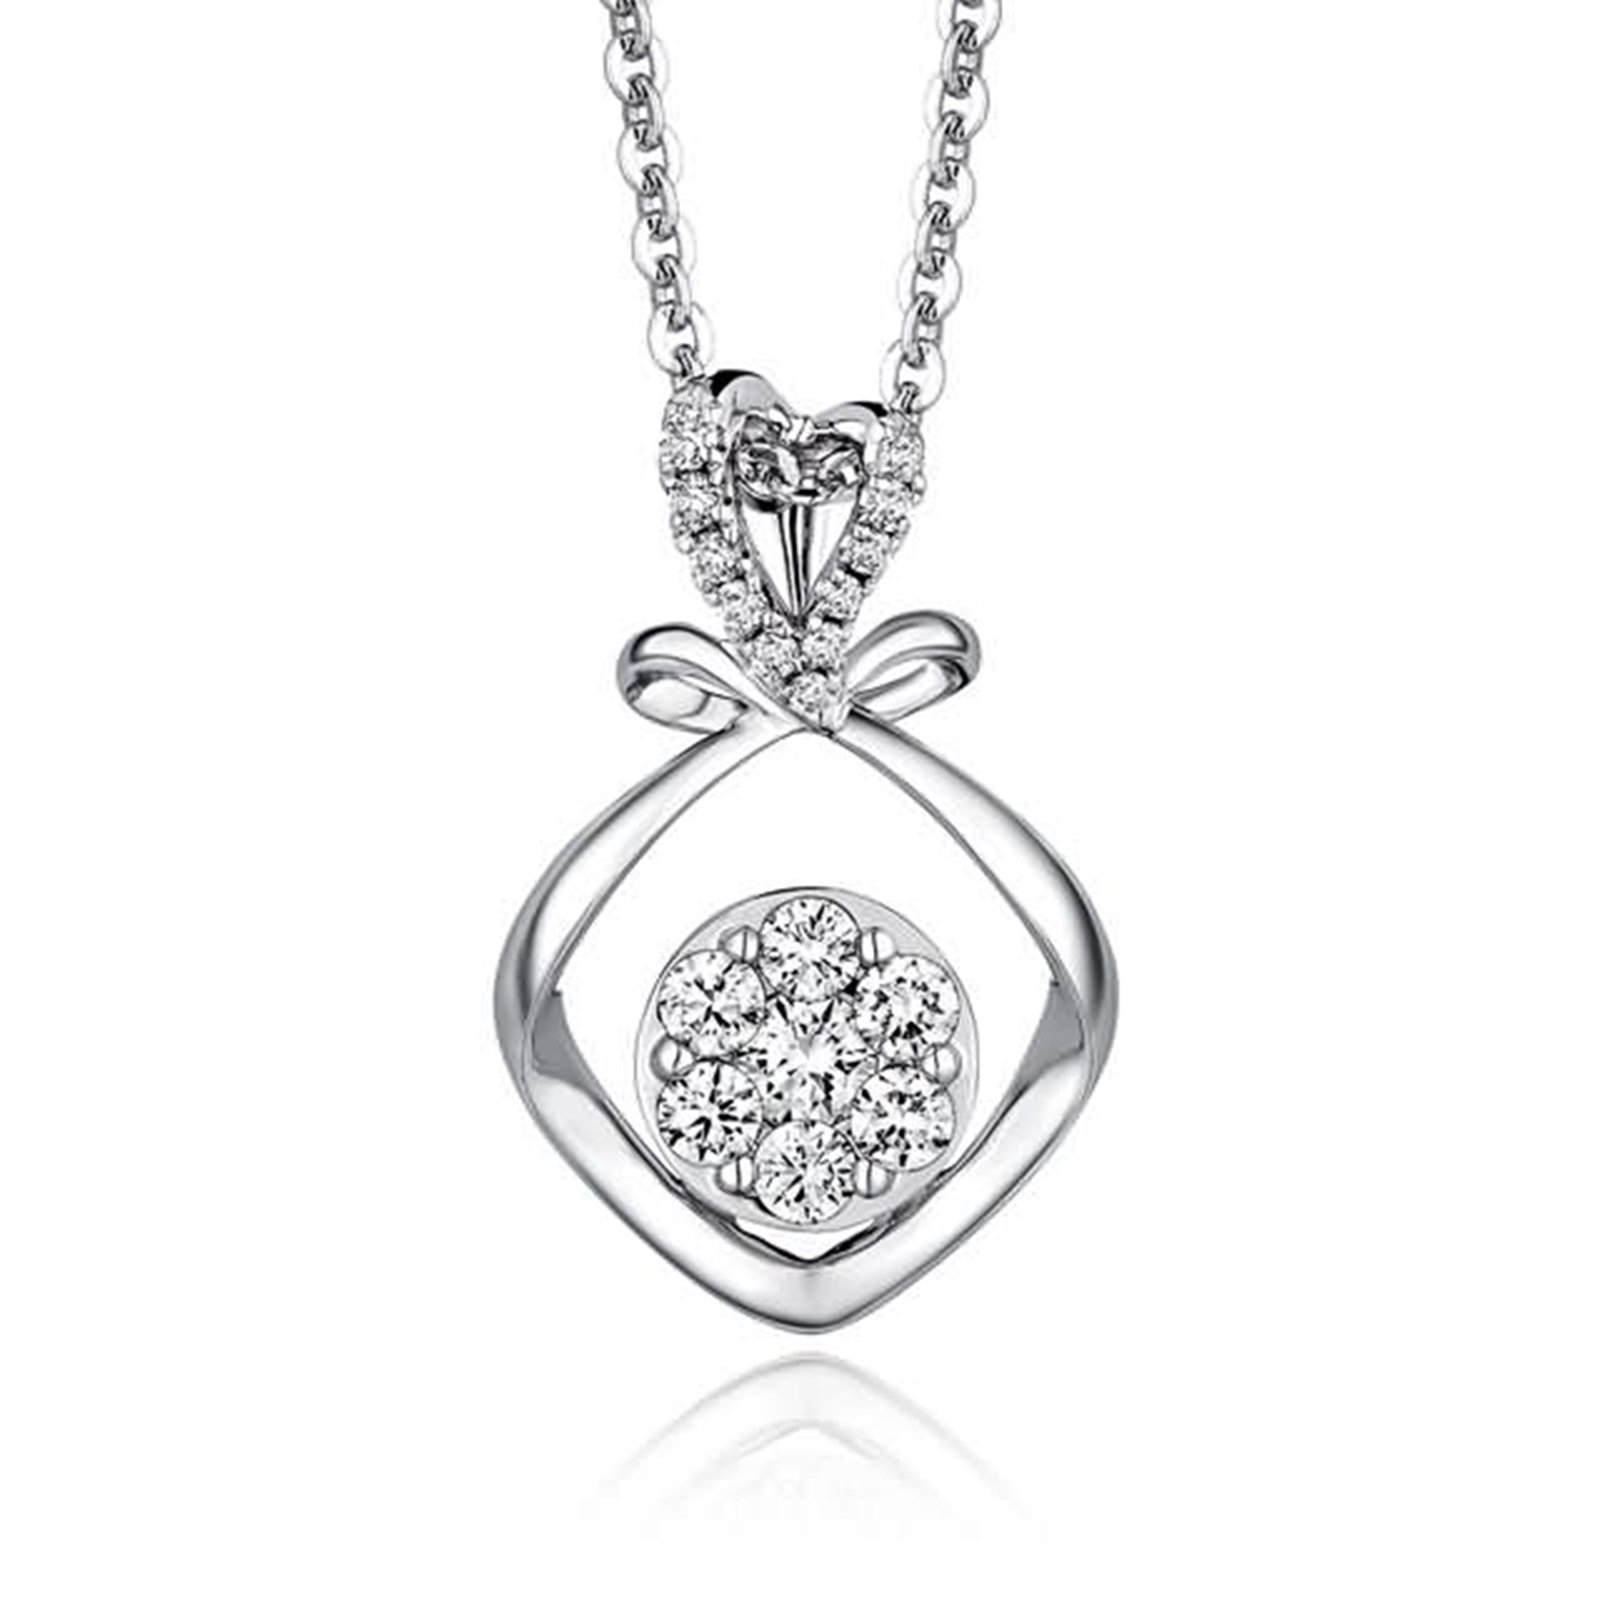 Beydodo Women Necklace,18k Real White Gold 0.98g Love Knot Pendant Round Brilliant Diamond Necklace